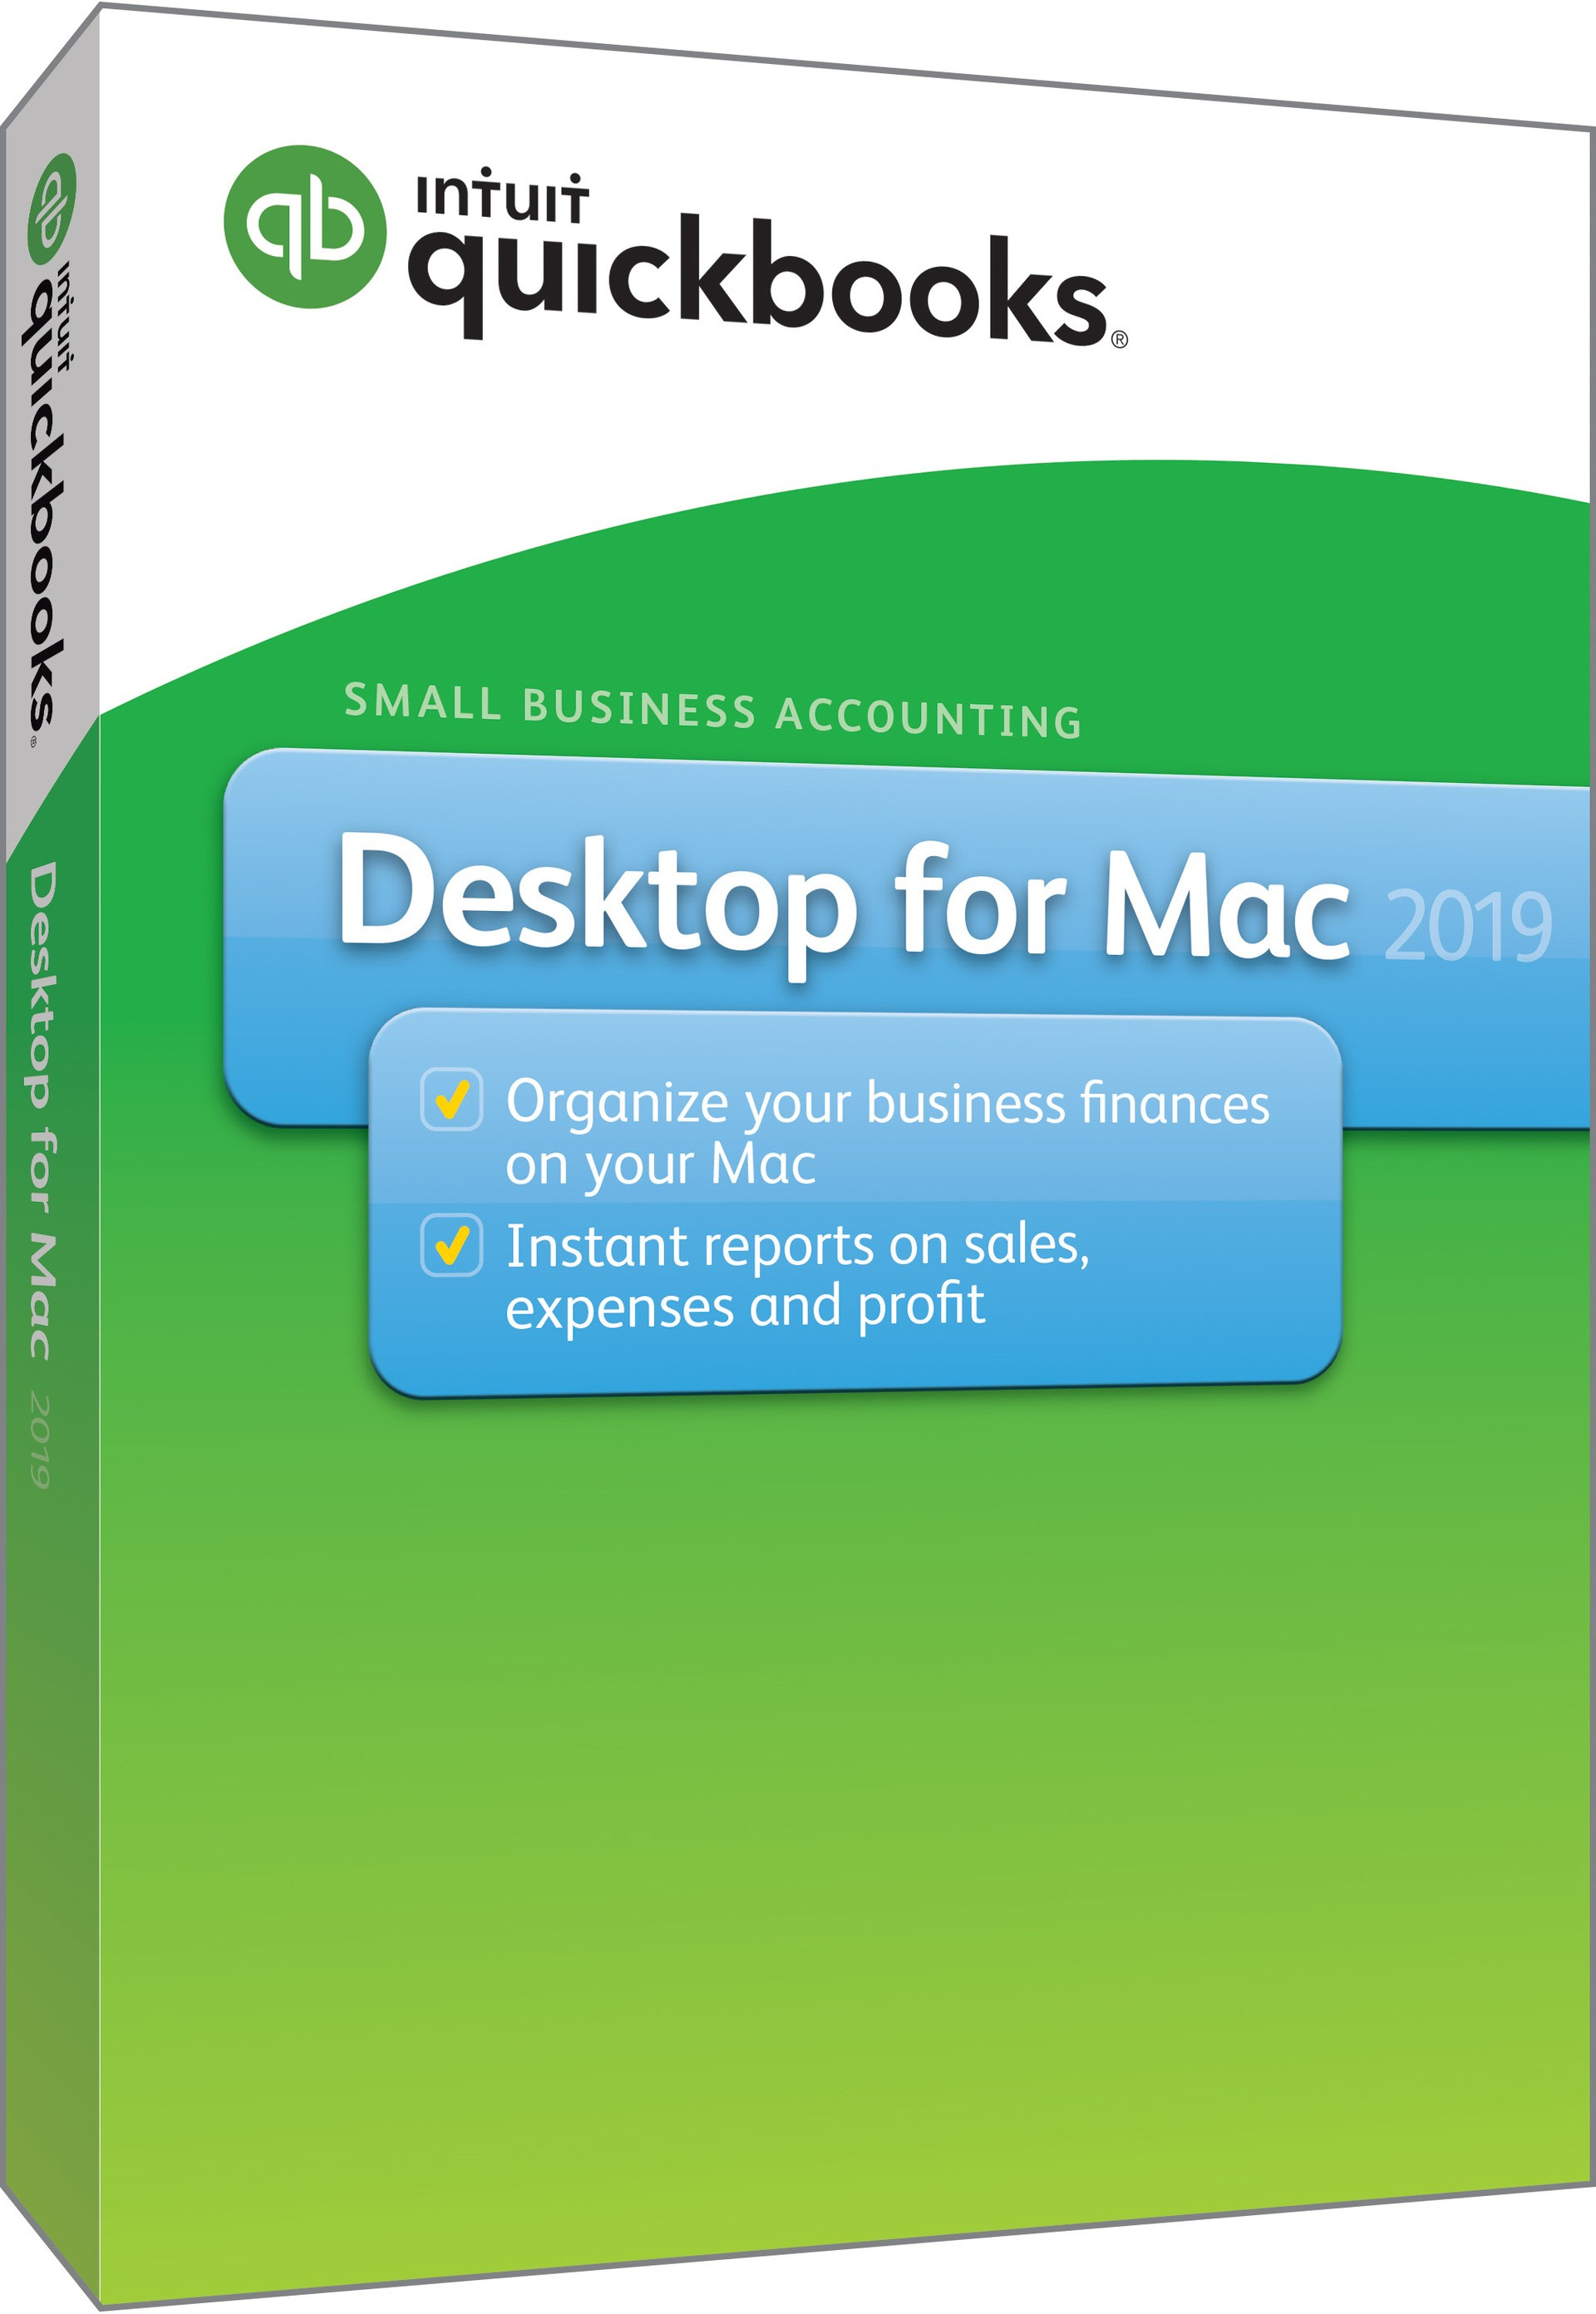 QuickBooks Desktop for Mac 2019 is back and better than ever